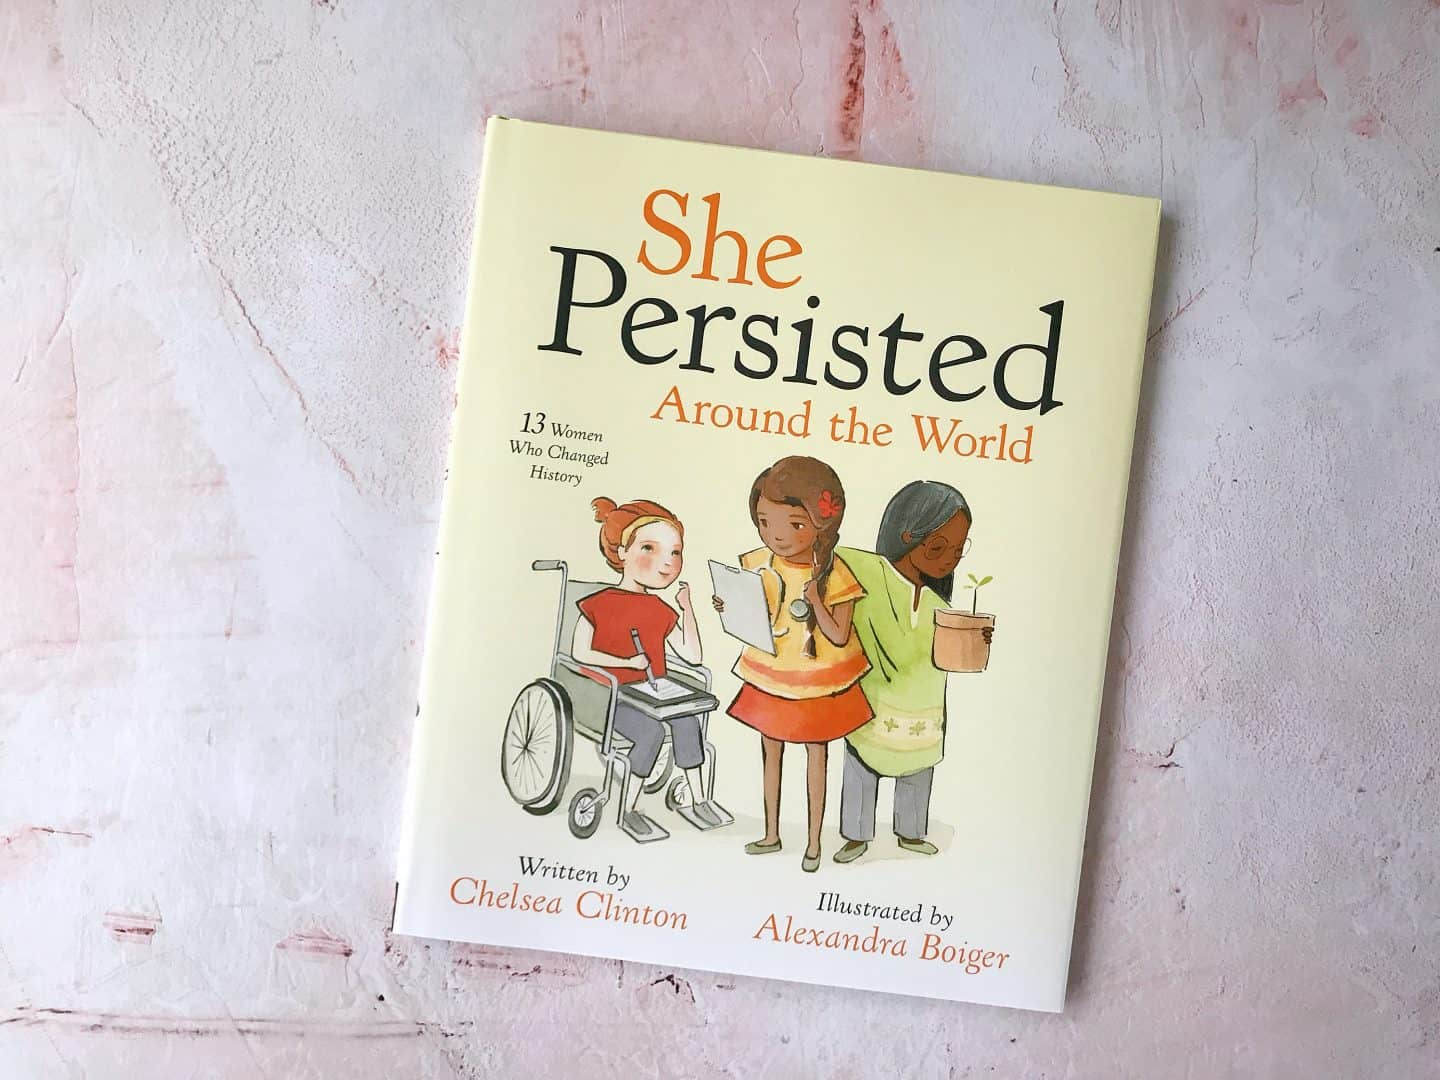 She Persisted Around the World by Chelsea Clinton Review